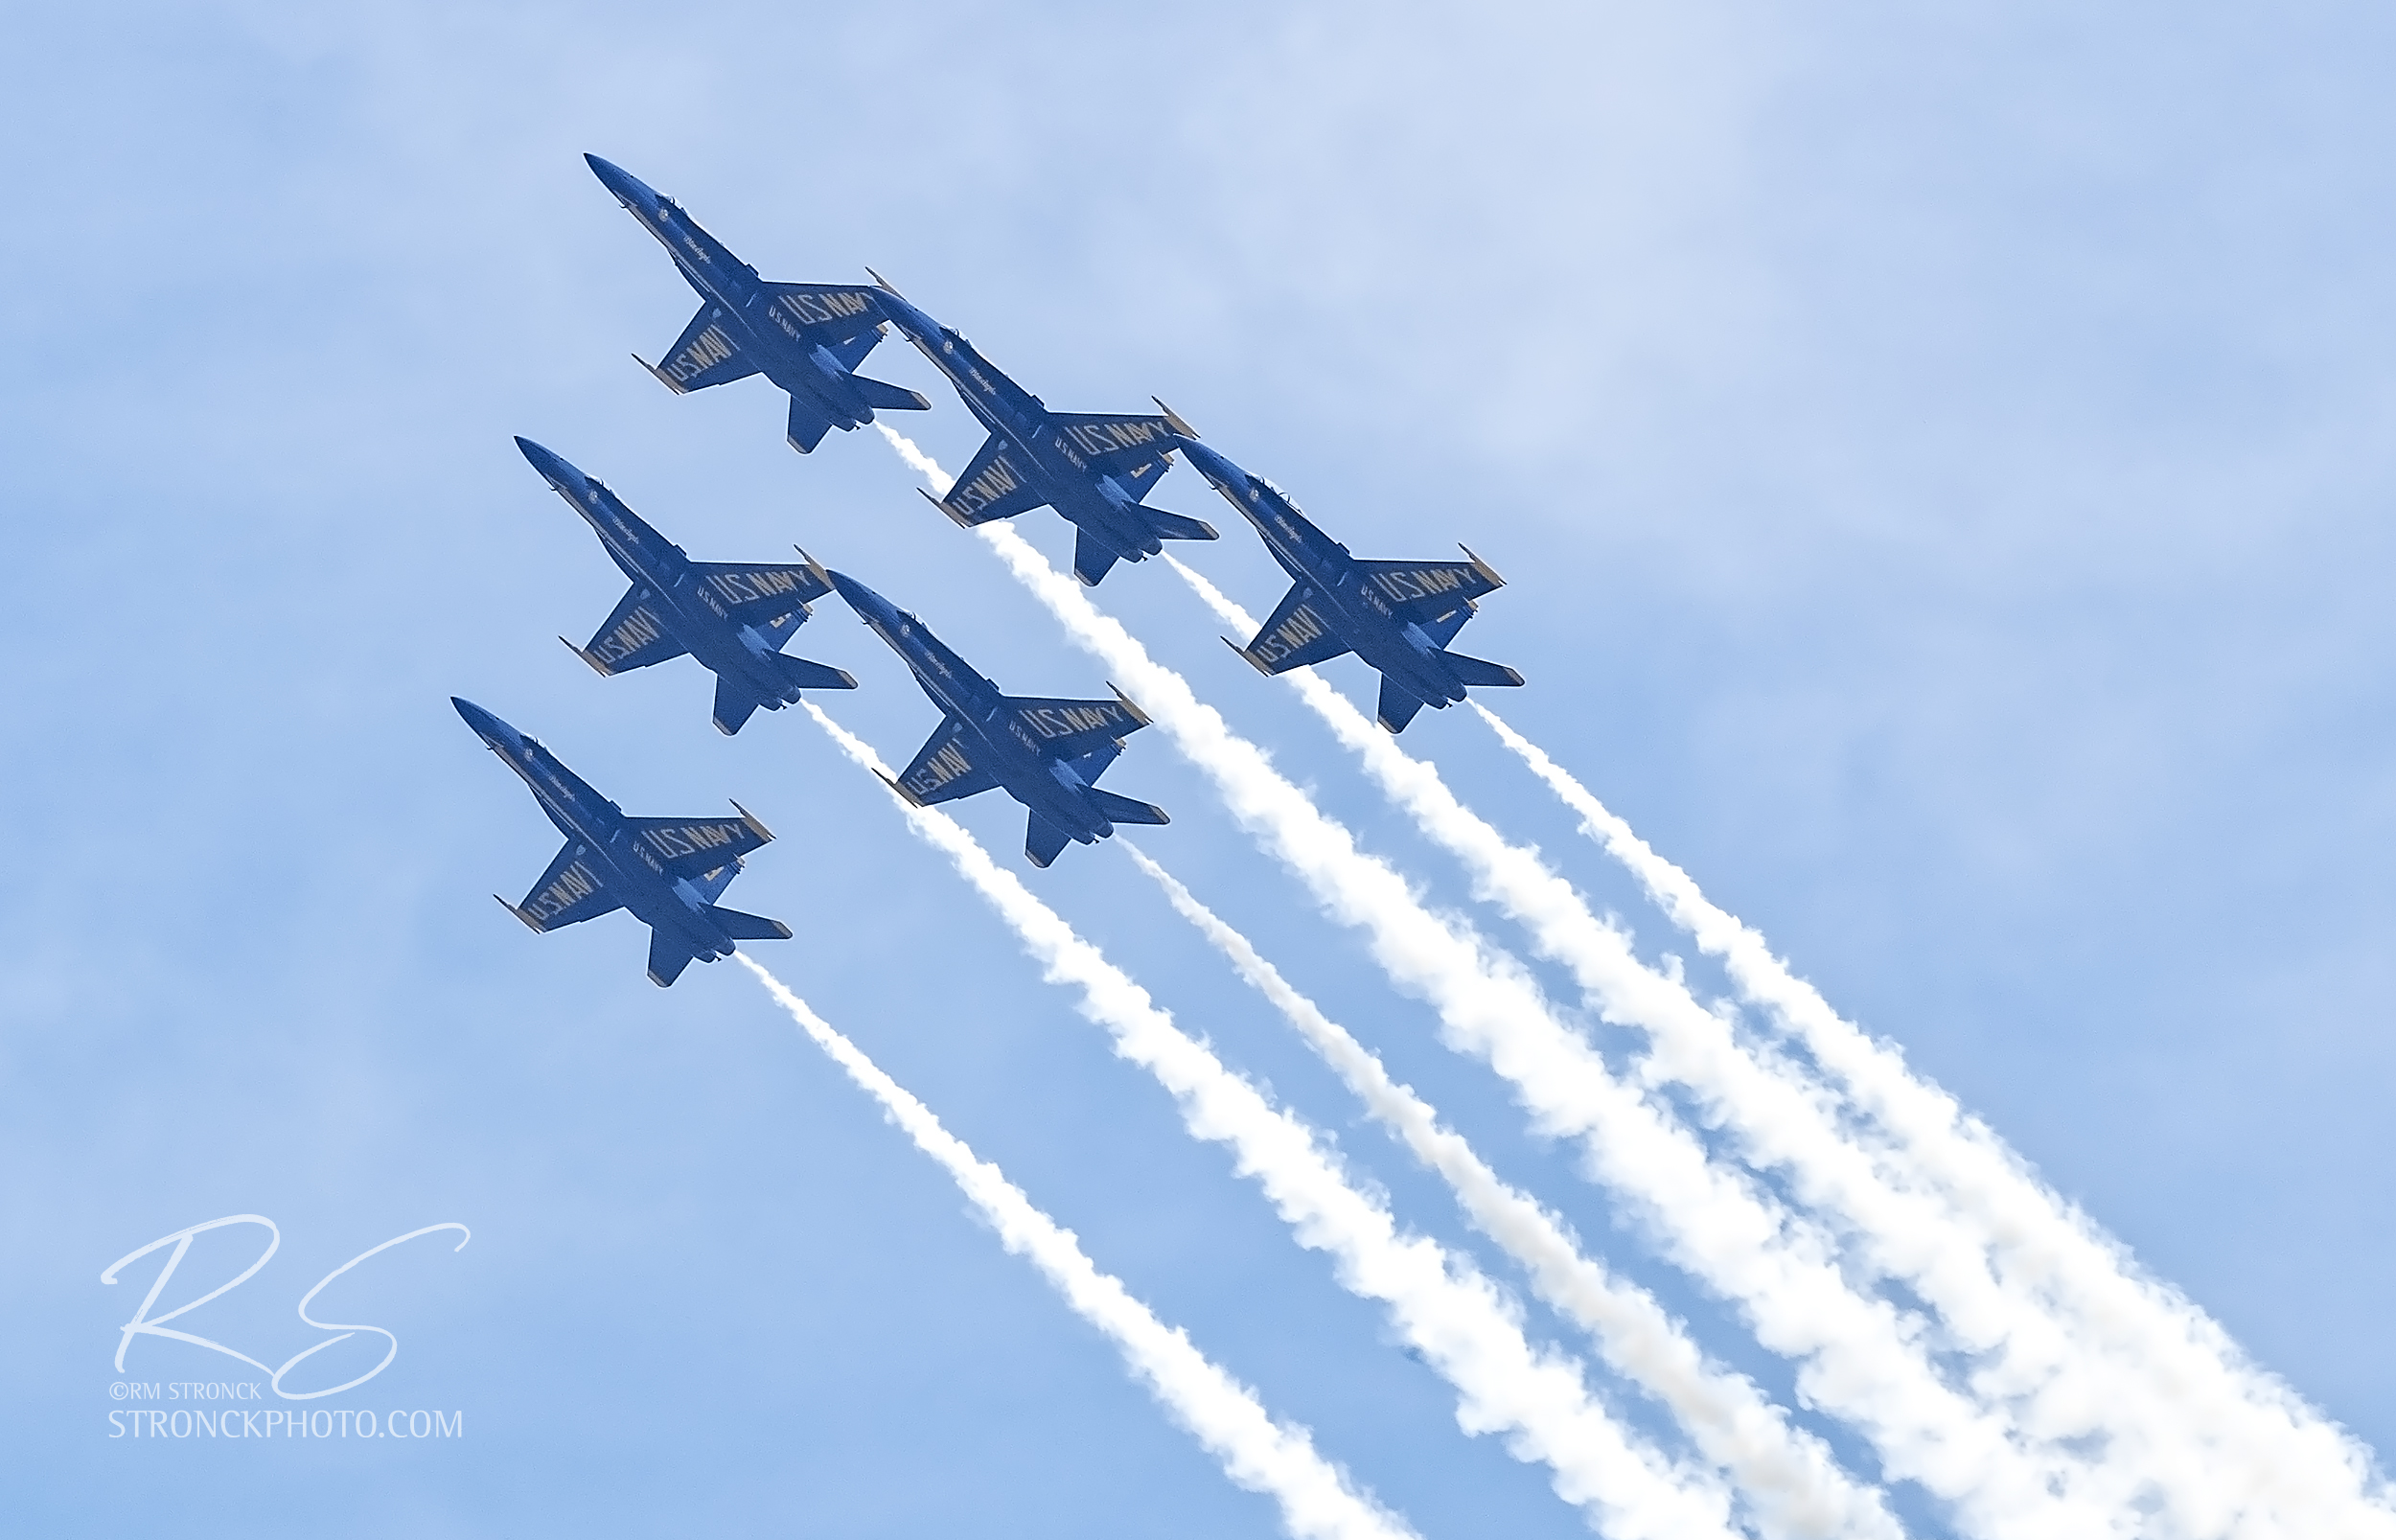 Blue_Angels819478Lr5k-wide.jpg